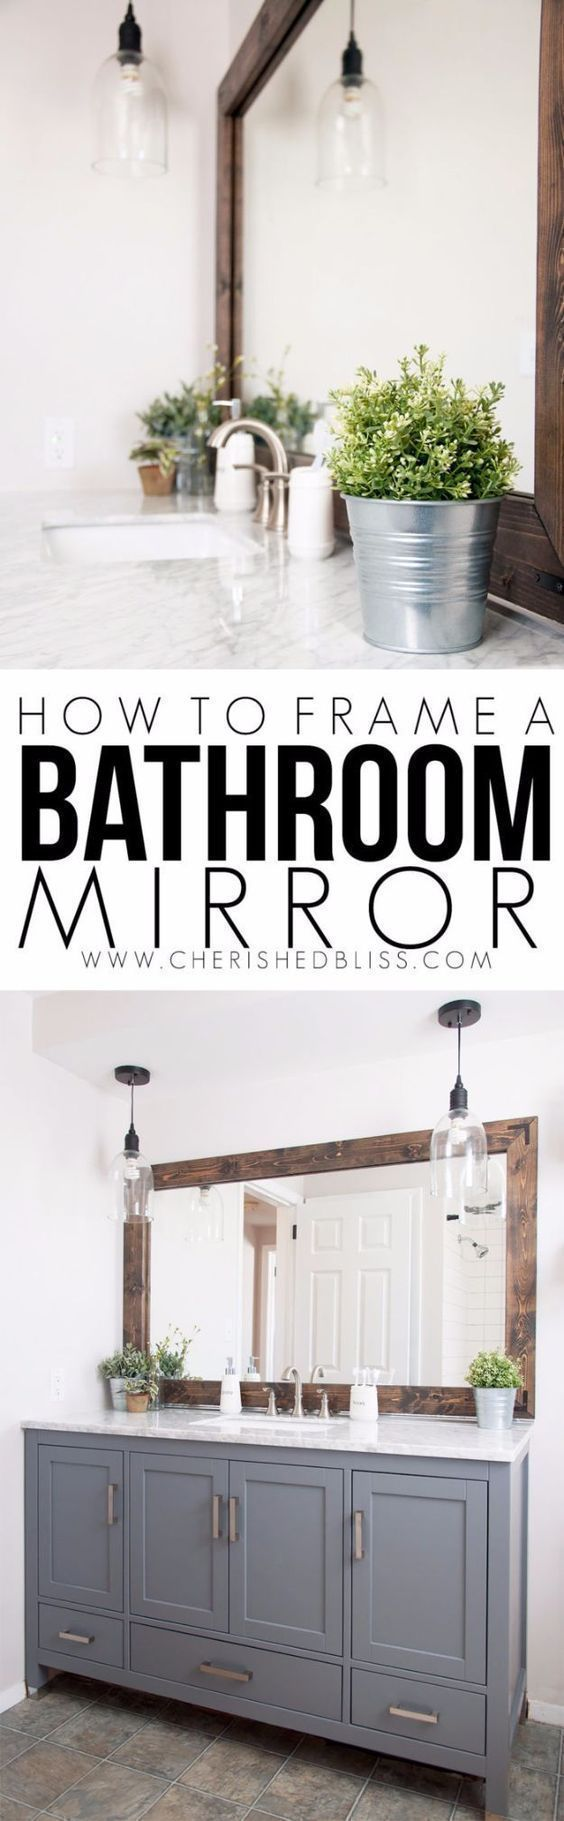 DIY Remodeling Hacks - Frame a Bathroom Mirror - Quick and Easy Home Repair Tips and Tricks - Cool Hacks for DIY Home Improvement Ideas - Cheap Ways To Fix Bathroom, Bedroom, Kitchen, Outdoor, Living Room and Lighting - Creative Renovation on A Budget - D #kitchenrenovations #homeremodelingdiy #kitchenideasonabudget #homedecorcheap #homerenovationideas #homeimprovementideas #bathroomrenovations